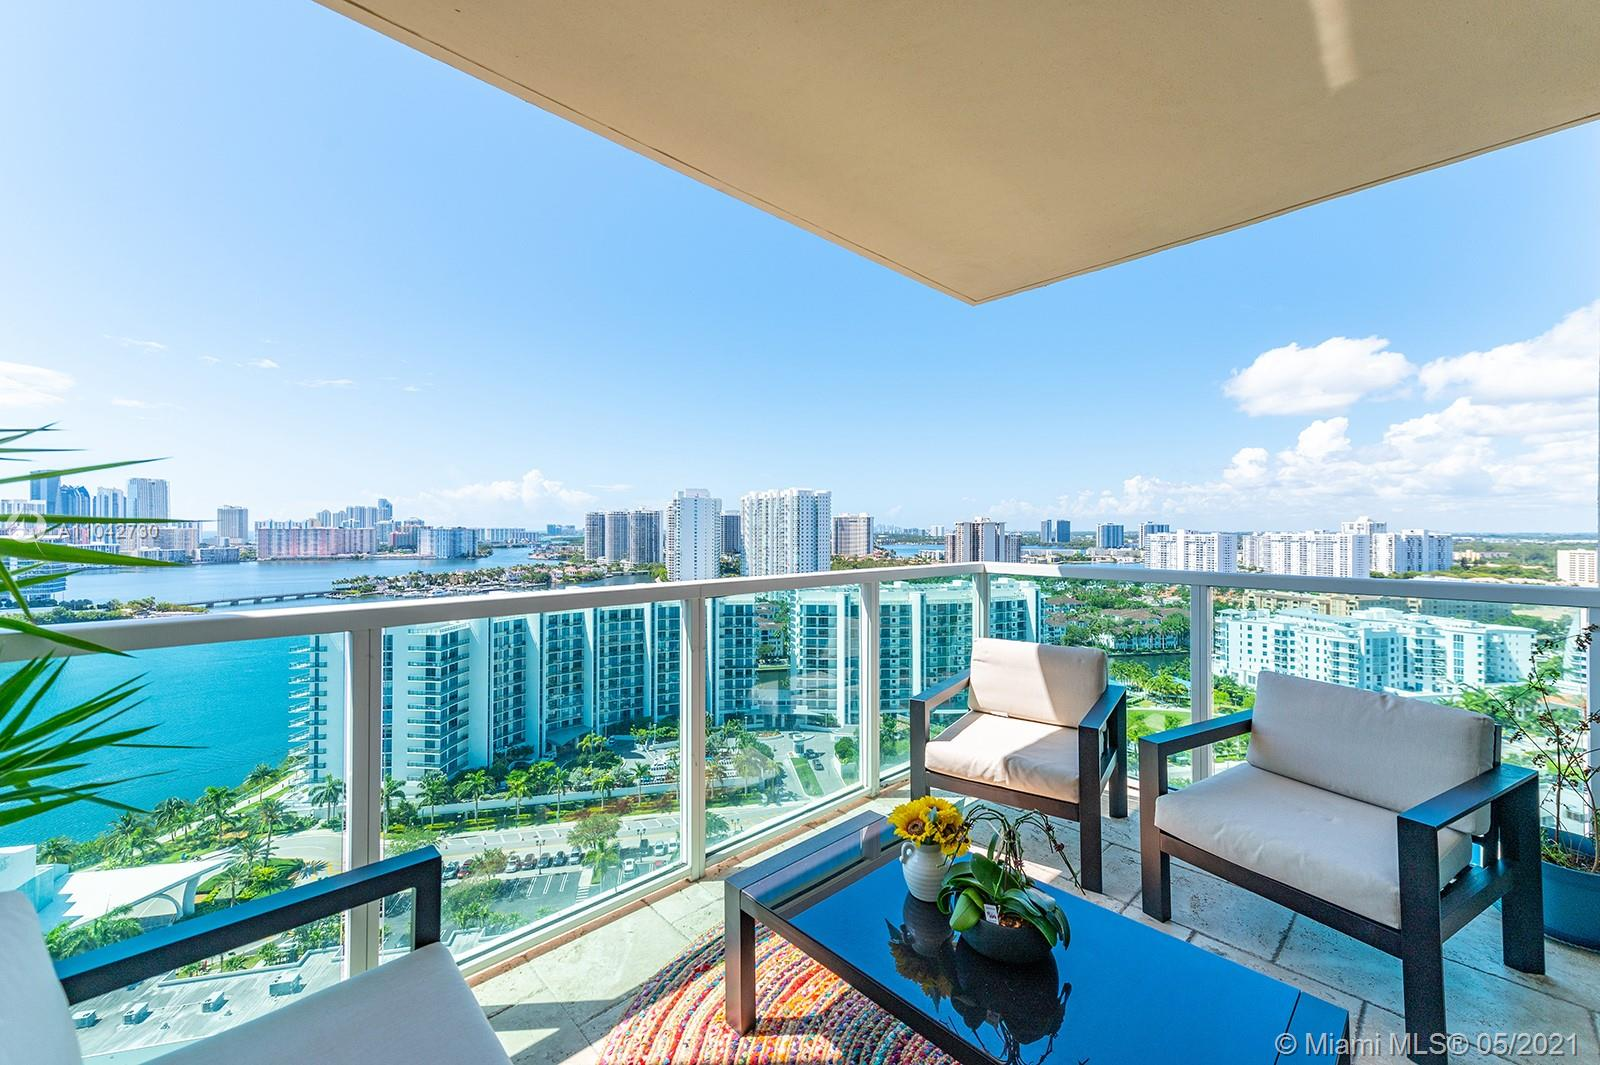 Photo of 3330 190th St #2219, Aventura, Florida, 33180 - Your View